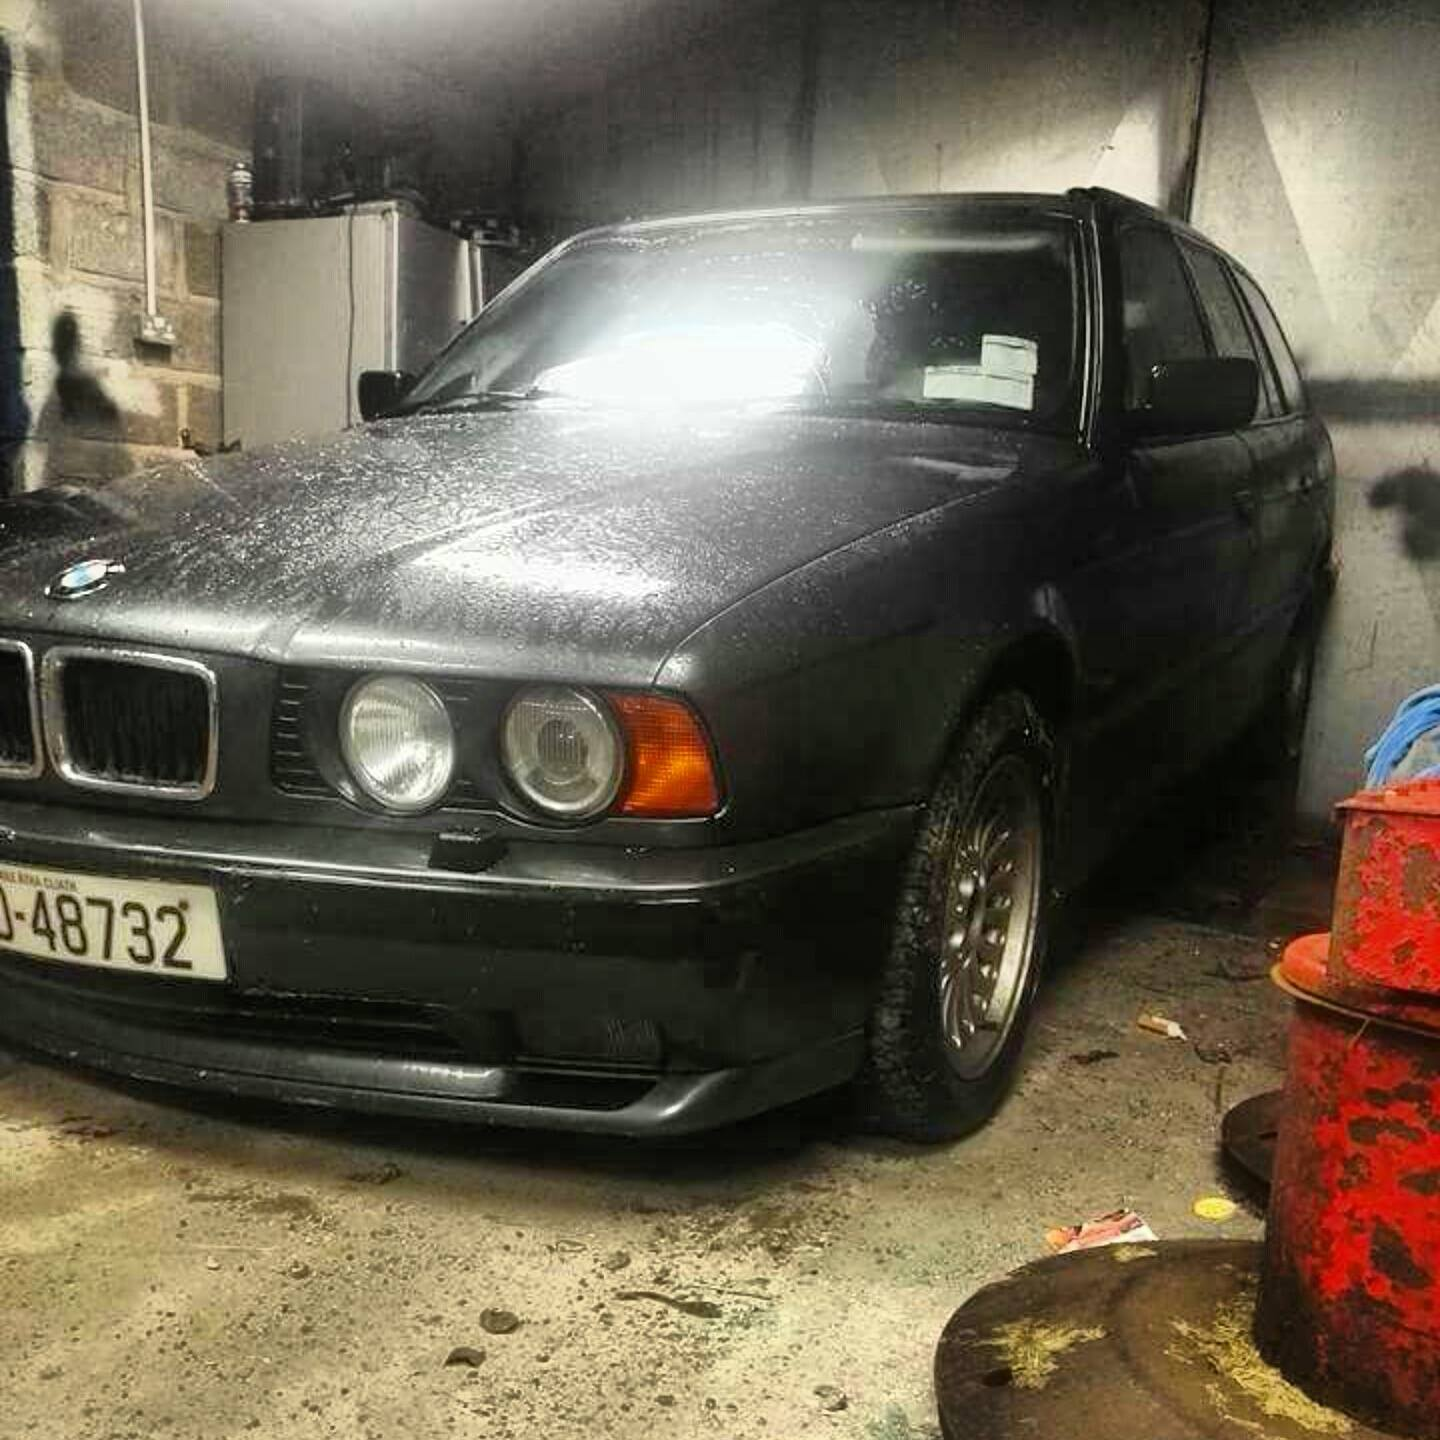 Used Turbo Bmw For Sale: For Sale - Bmw E34 Touring 2.8 Turbo Project